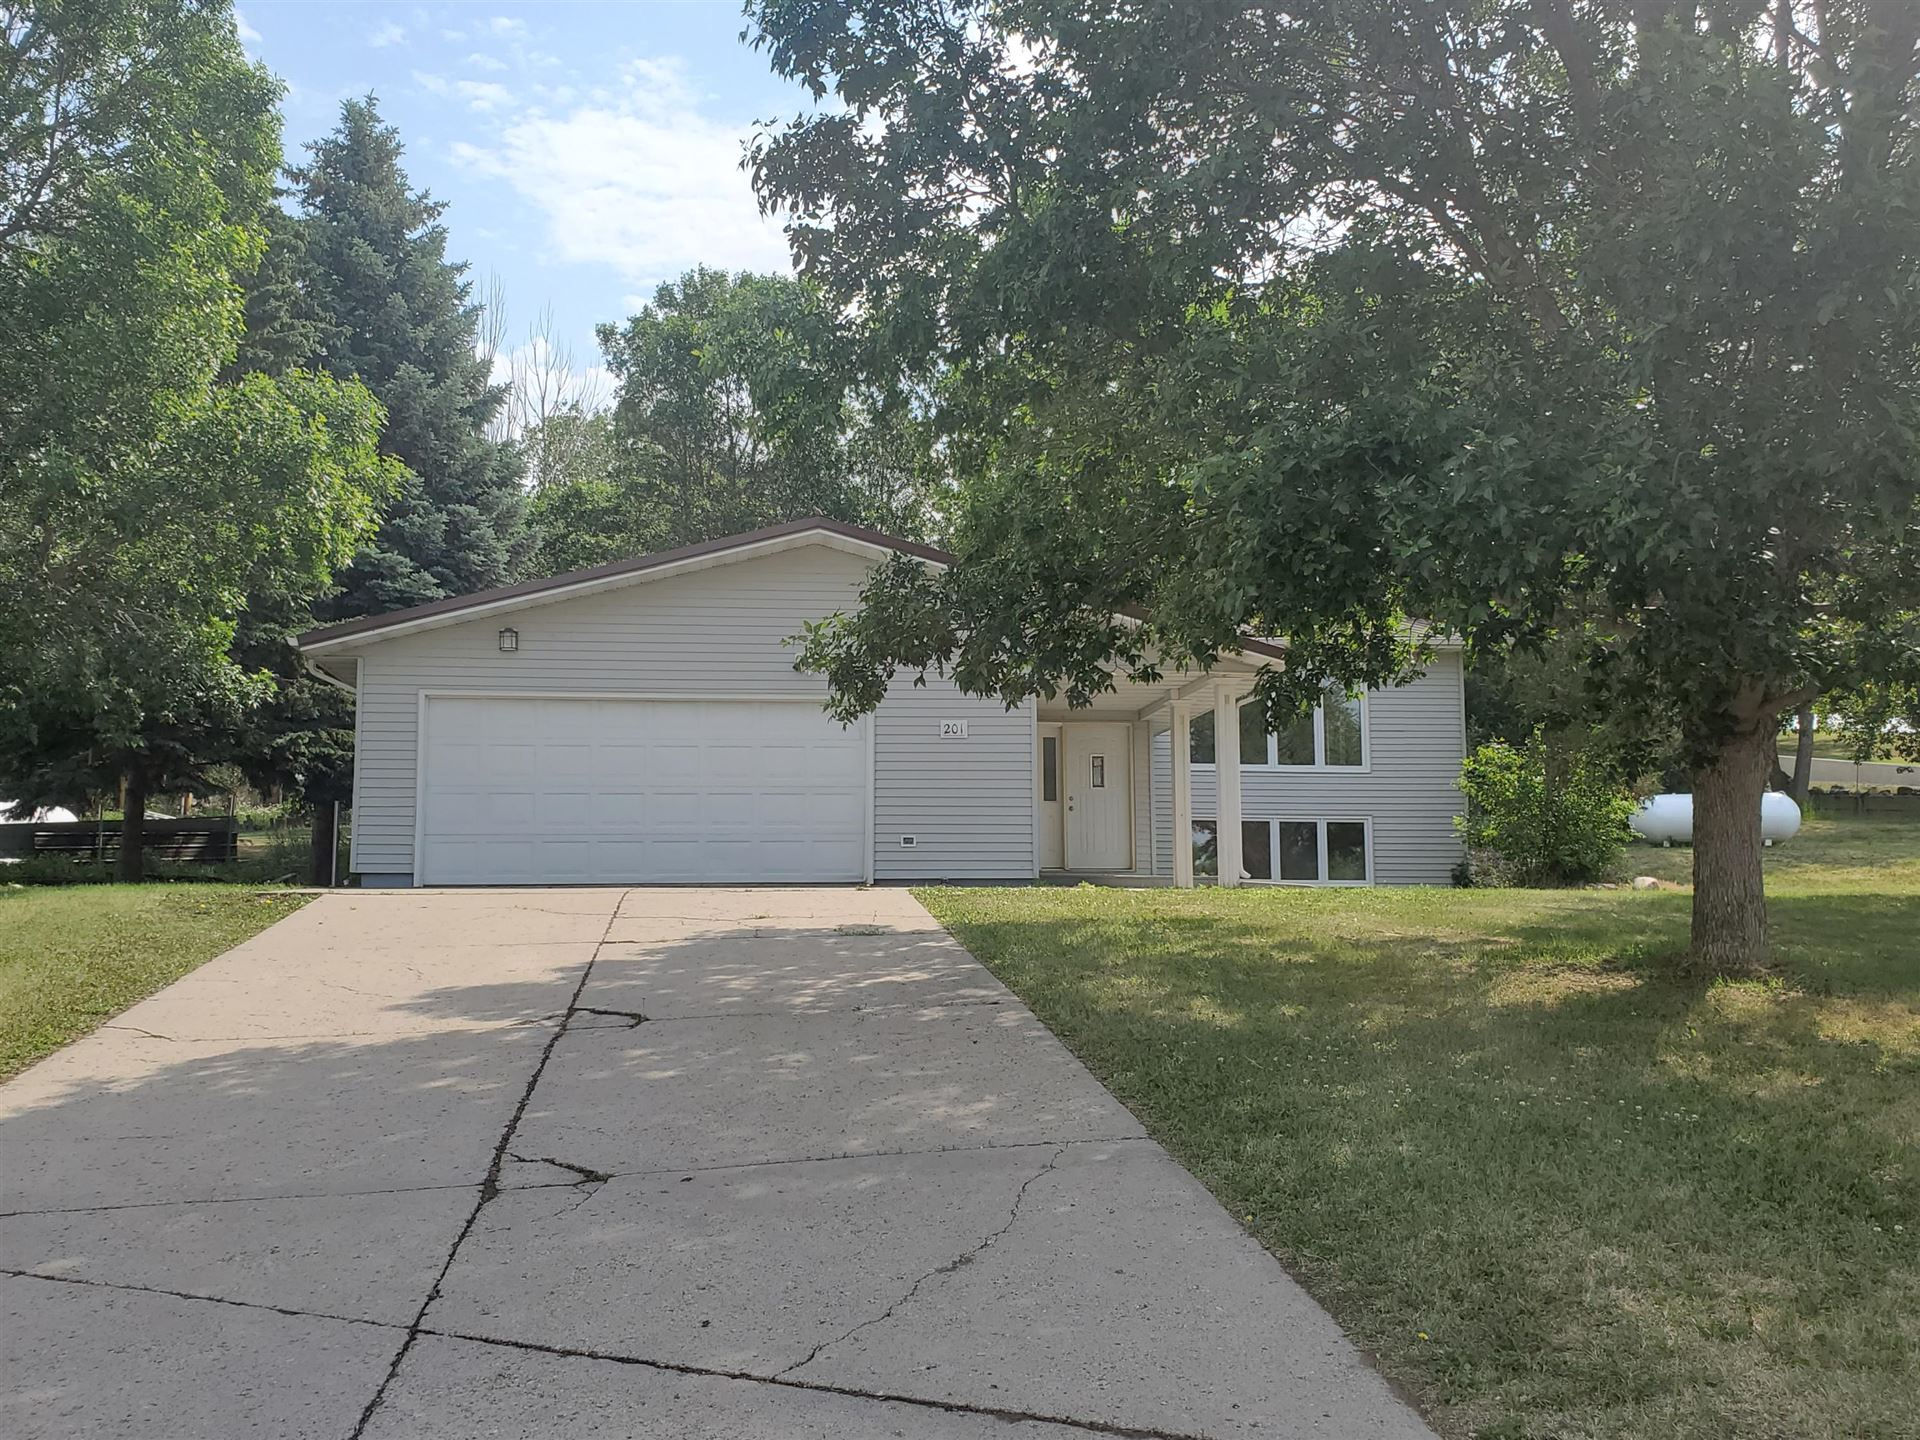 201 Yatsin Avenue, Center, ND 58530 - #: 407725